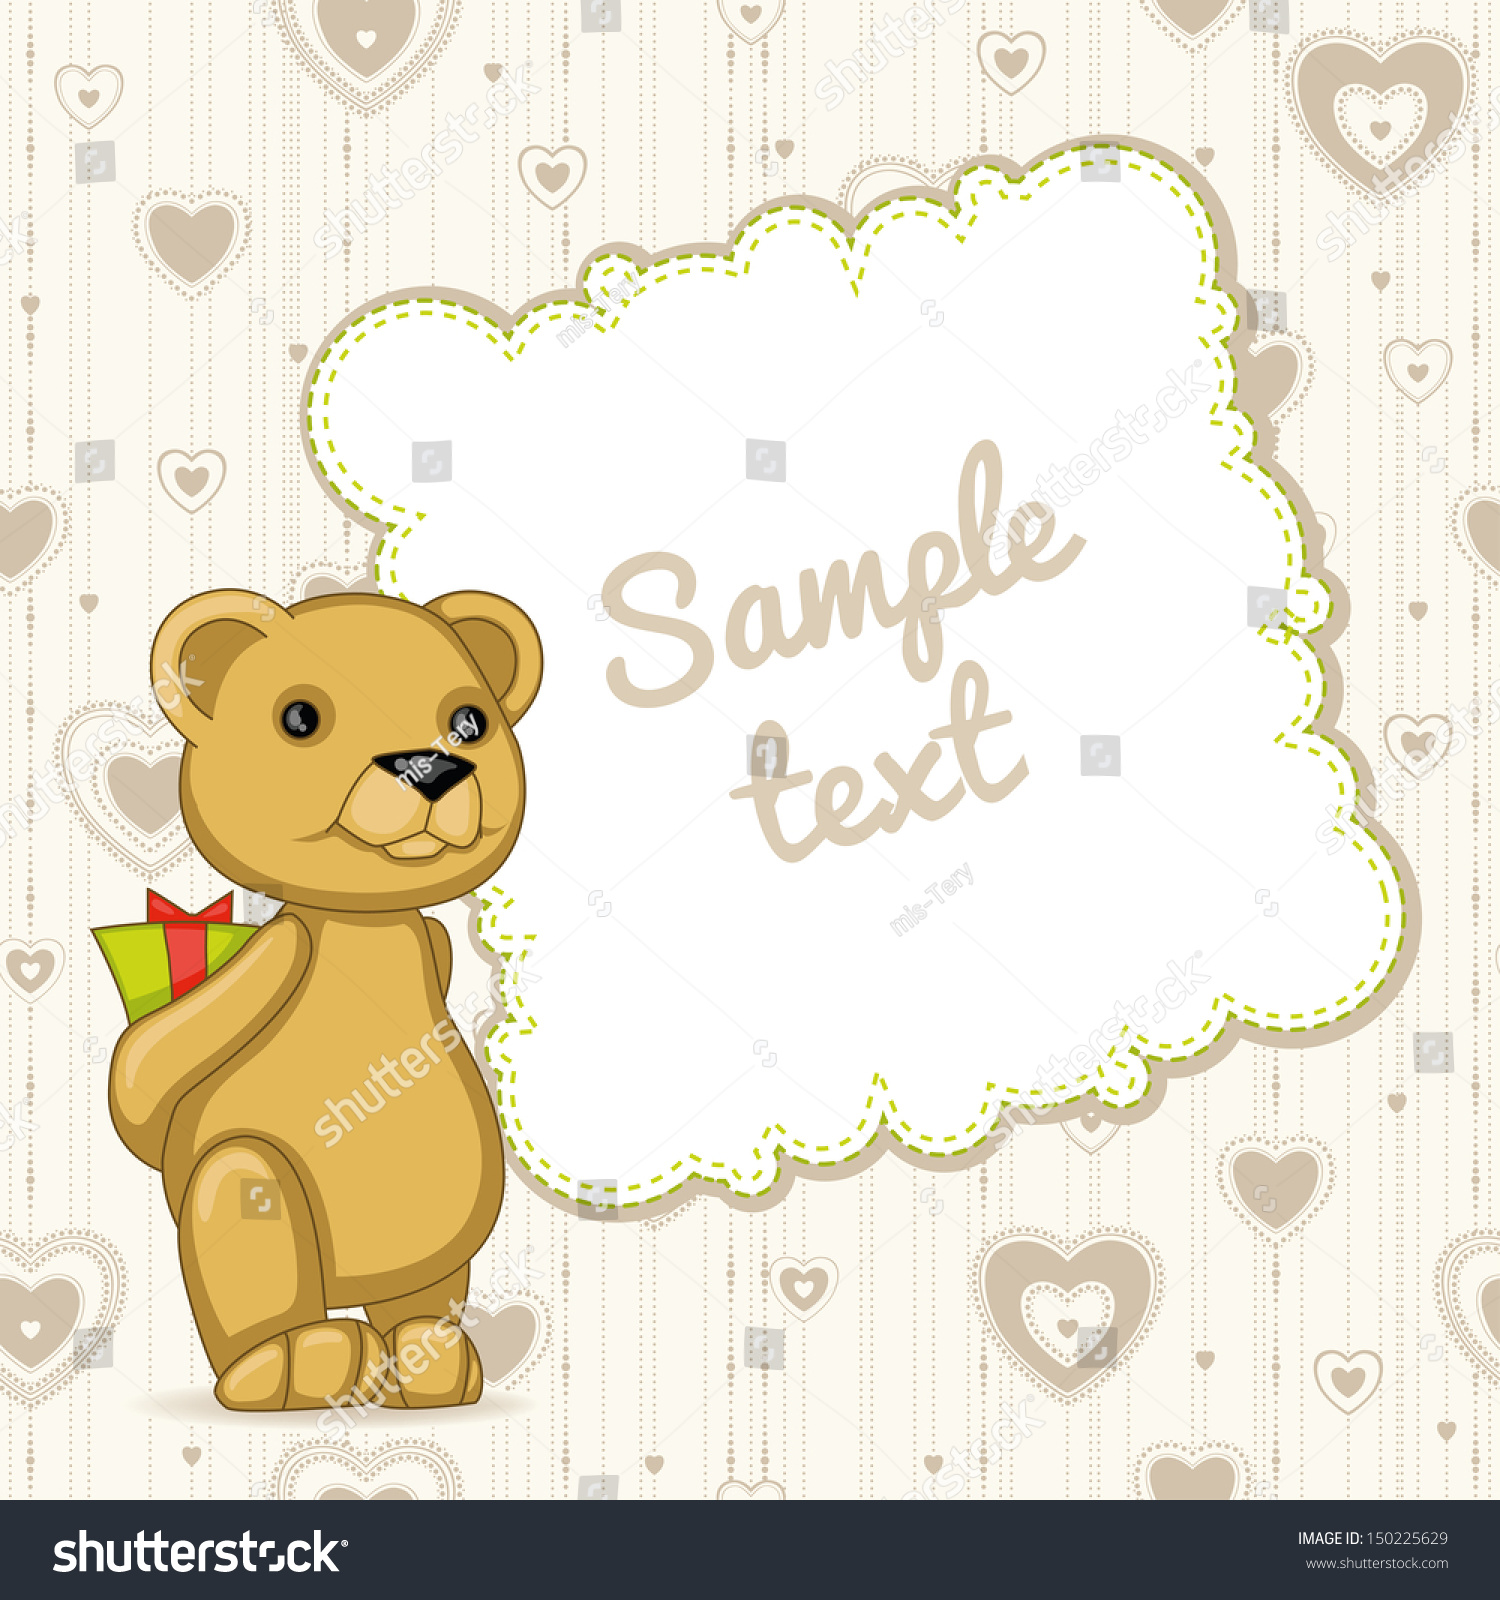 Template Card Teddy Bear Hearts Stock Vector HD (Royalty Free ...